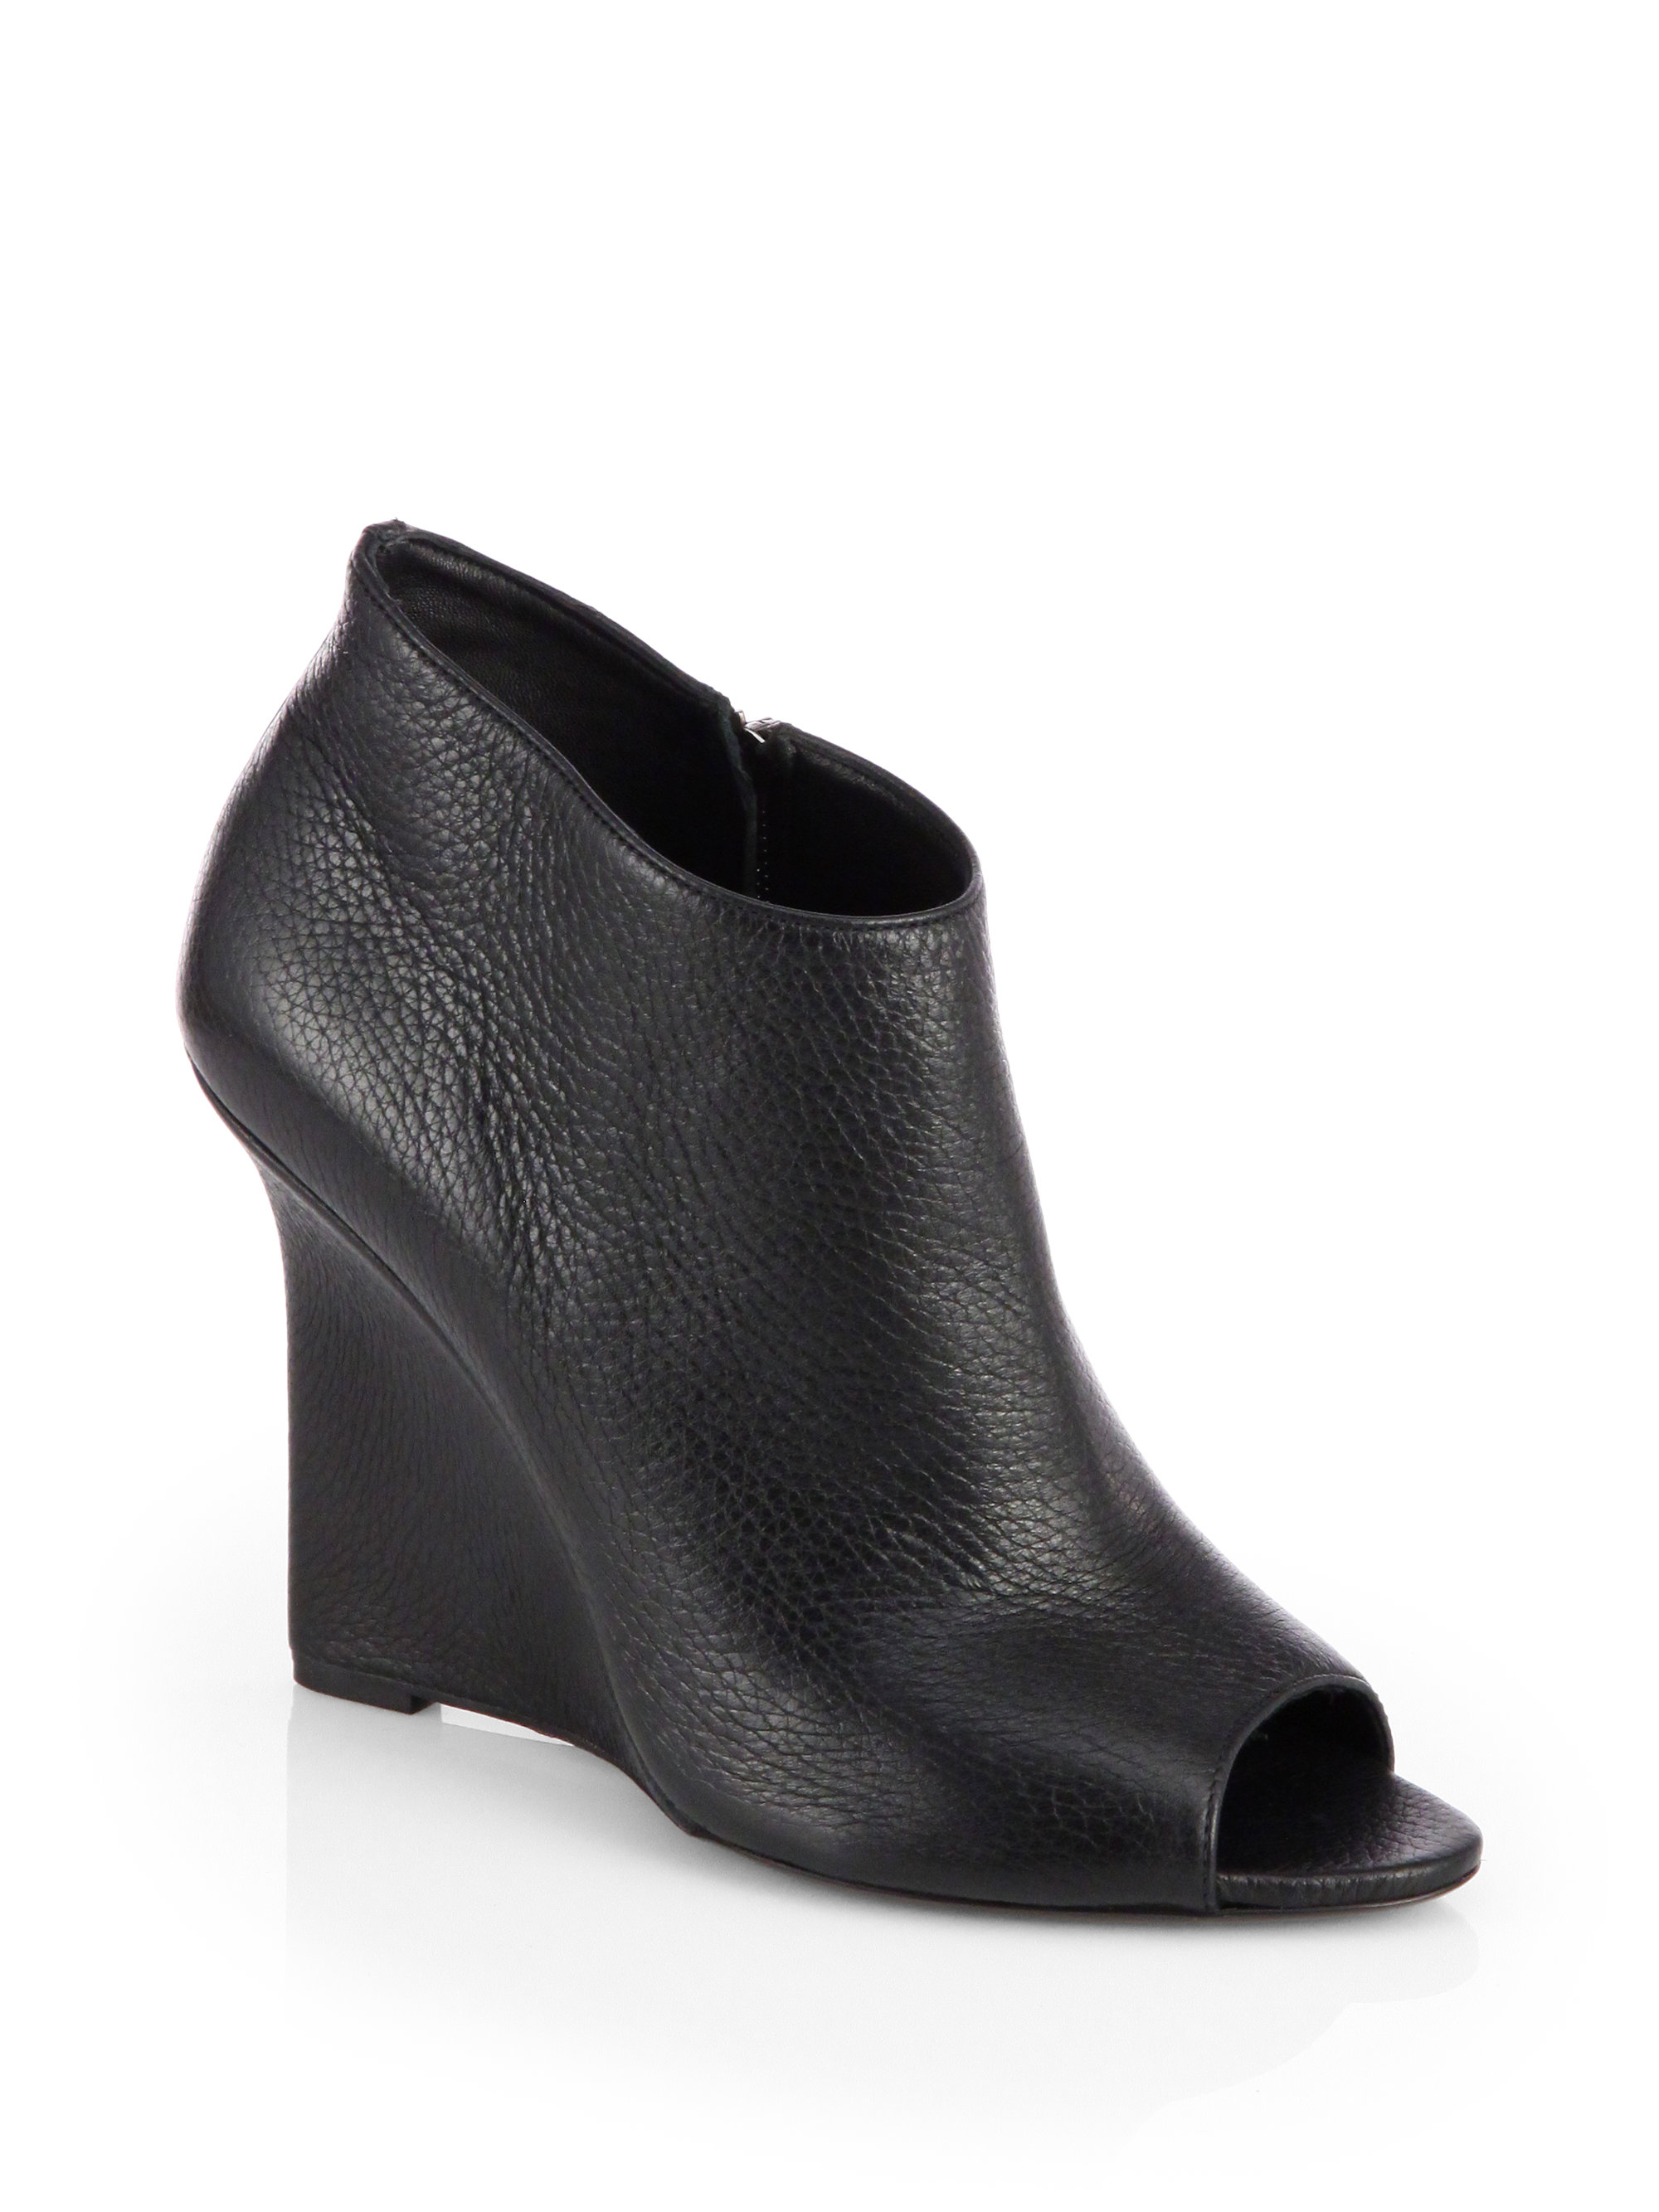 burberry prorsum boucher leather opentoe wedge ankle boots